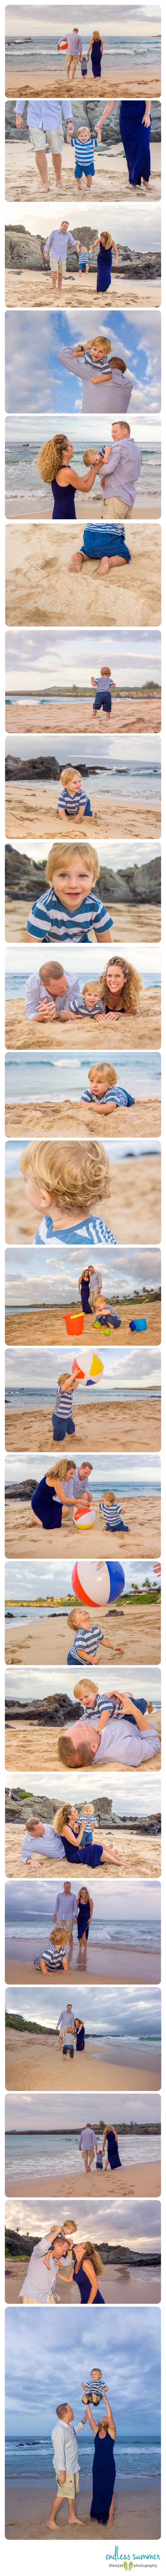 lifestyle family beach photos